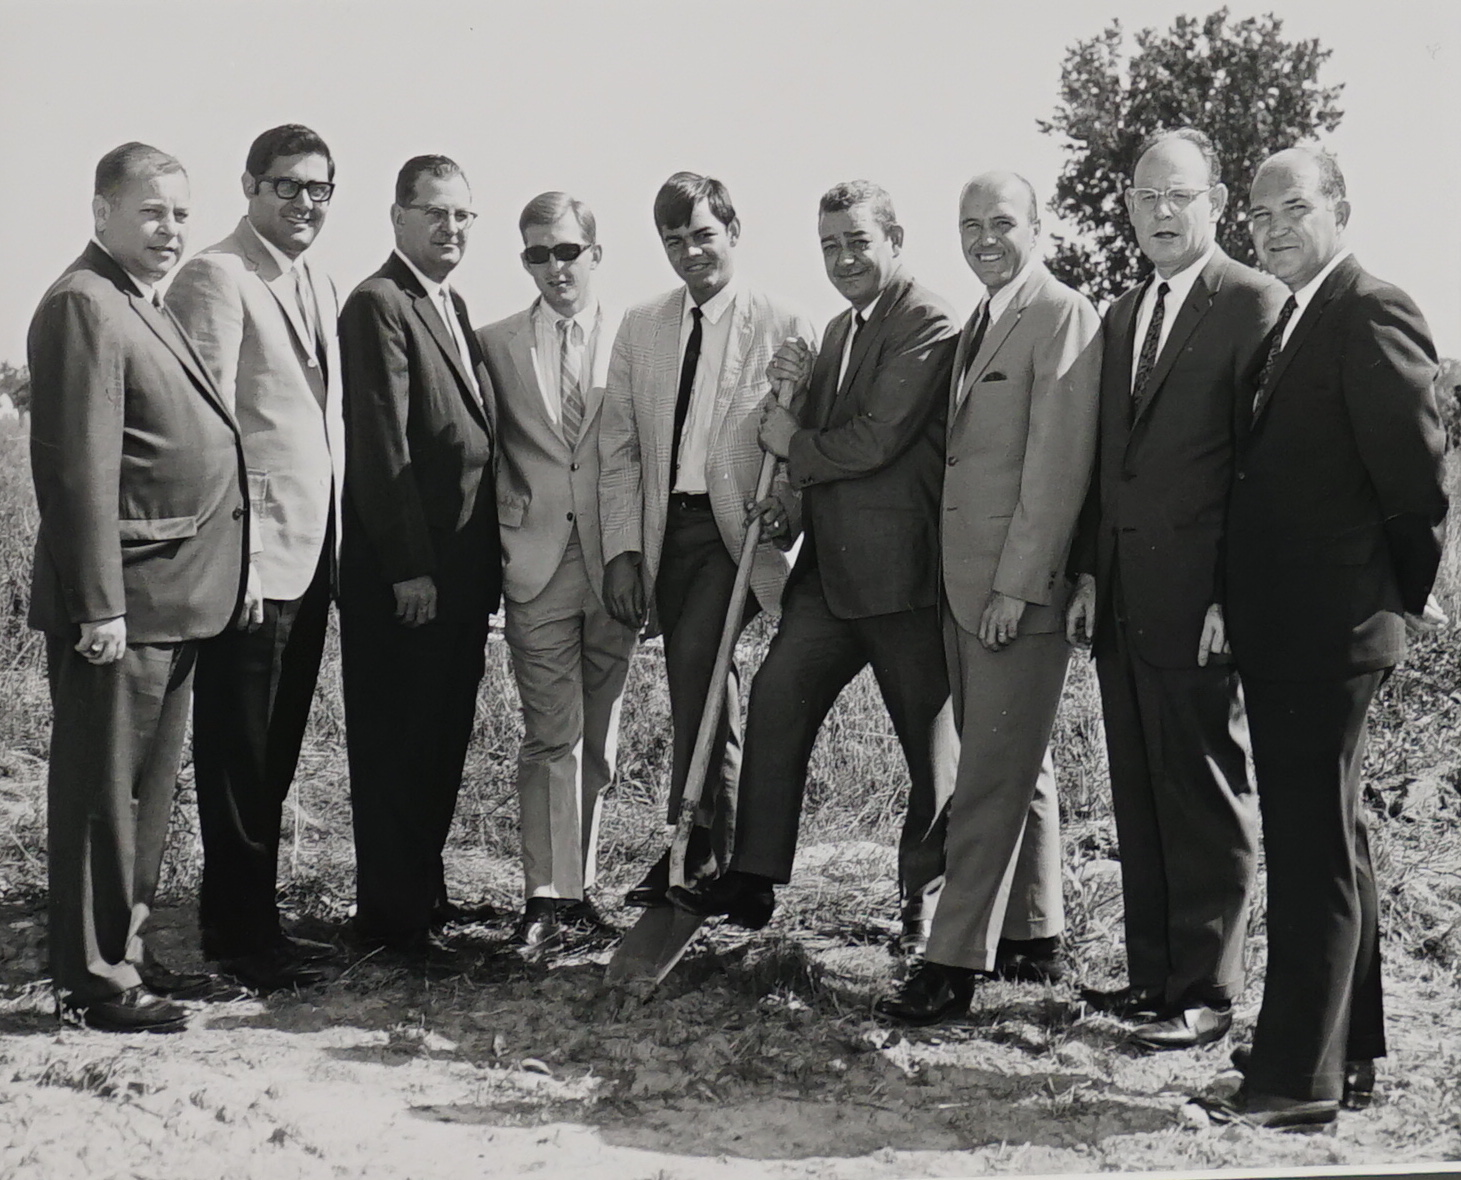 Miles Printing-1969 Ground Breaking Ceremony.  From left to right:  Doug Bolt, Bob Lutz (builder), Bob Ward, Gordon Jones, Rick Miles, Henry Miles, Ralph Dietz, Jerry Nieten, and Parvin (Benny) Benefiel.